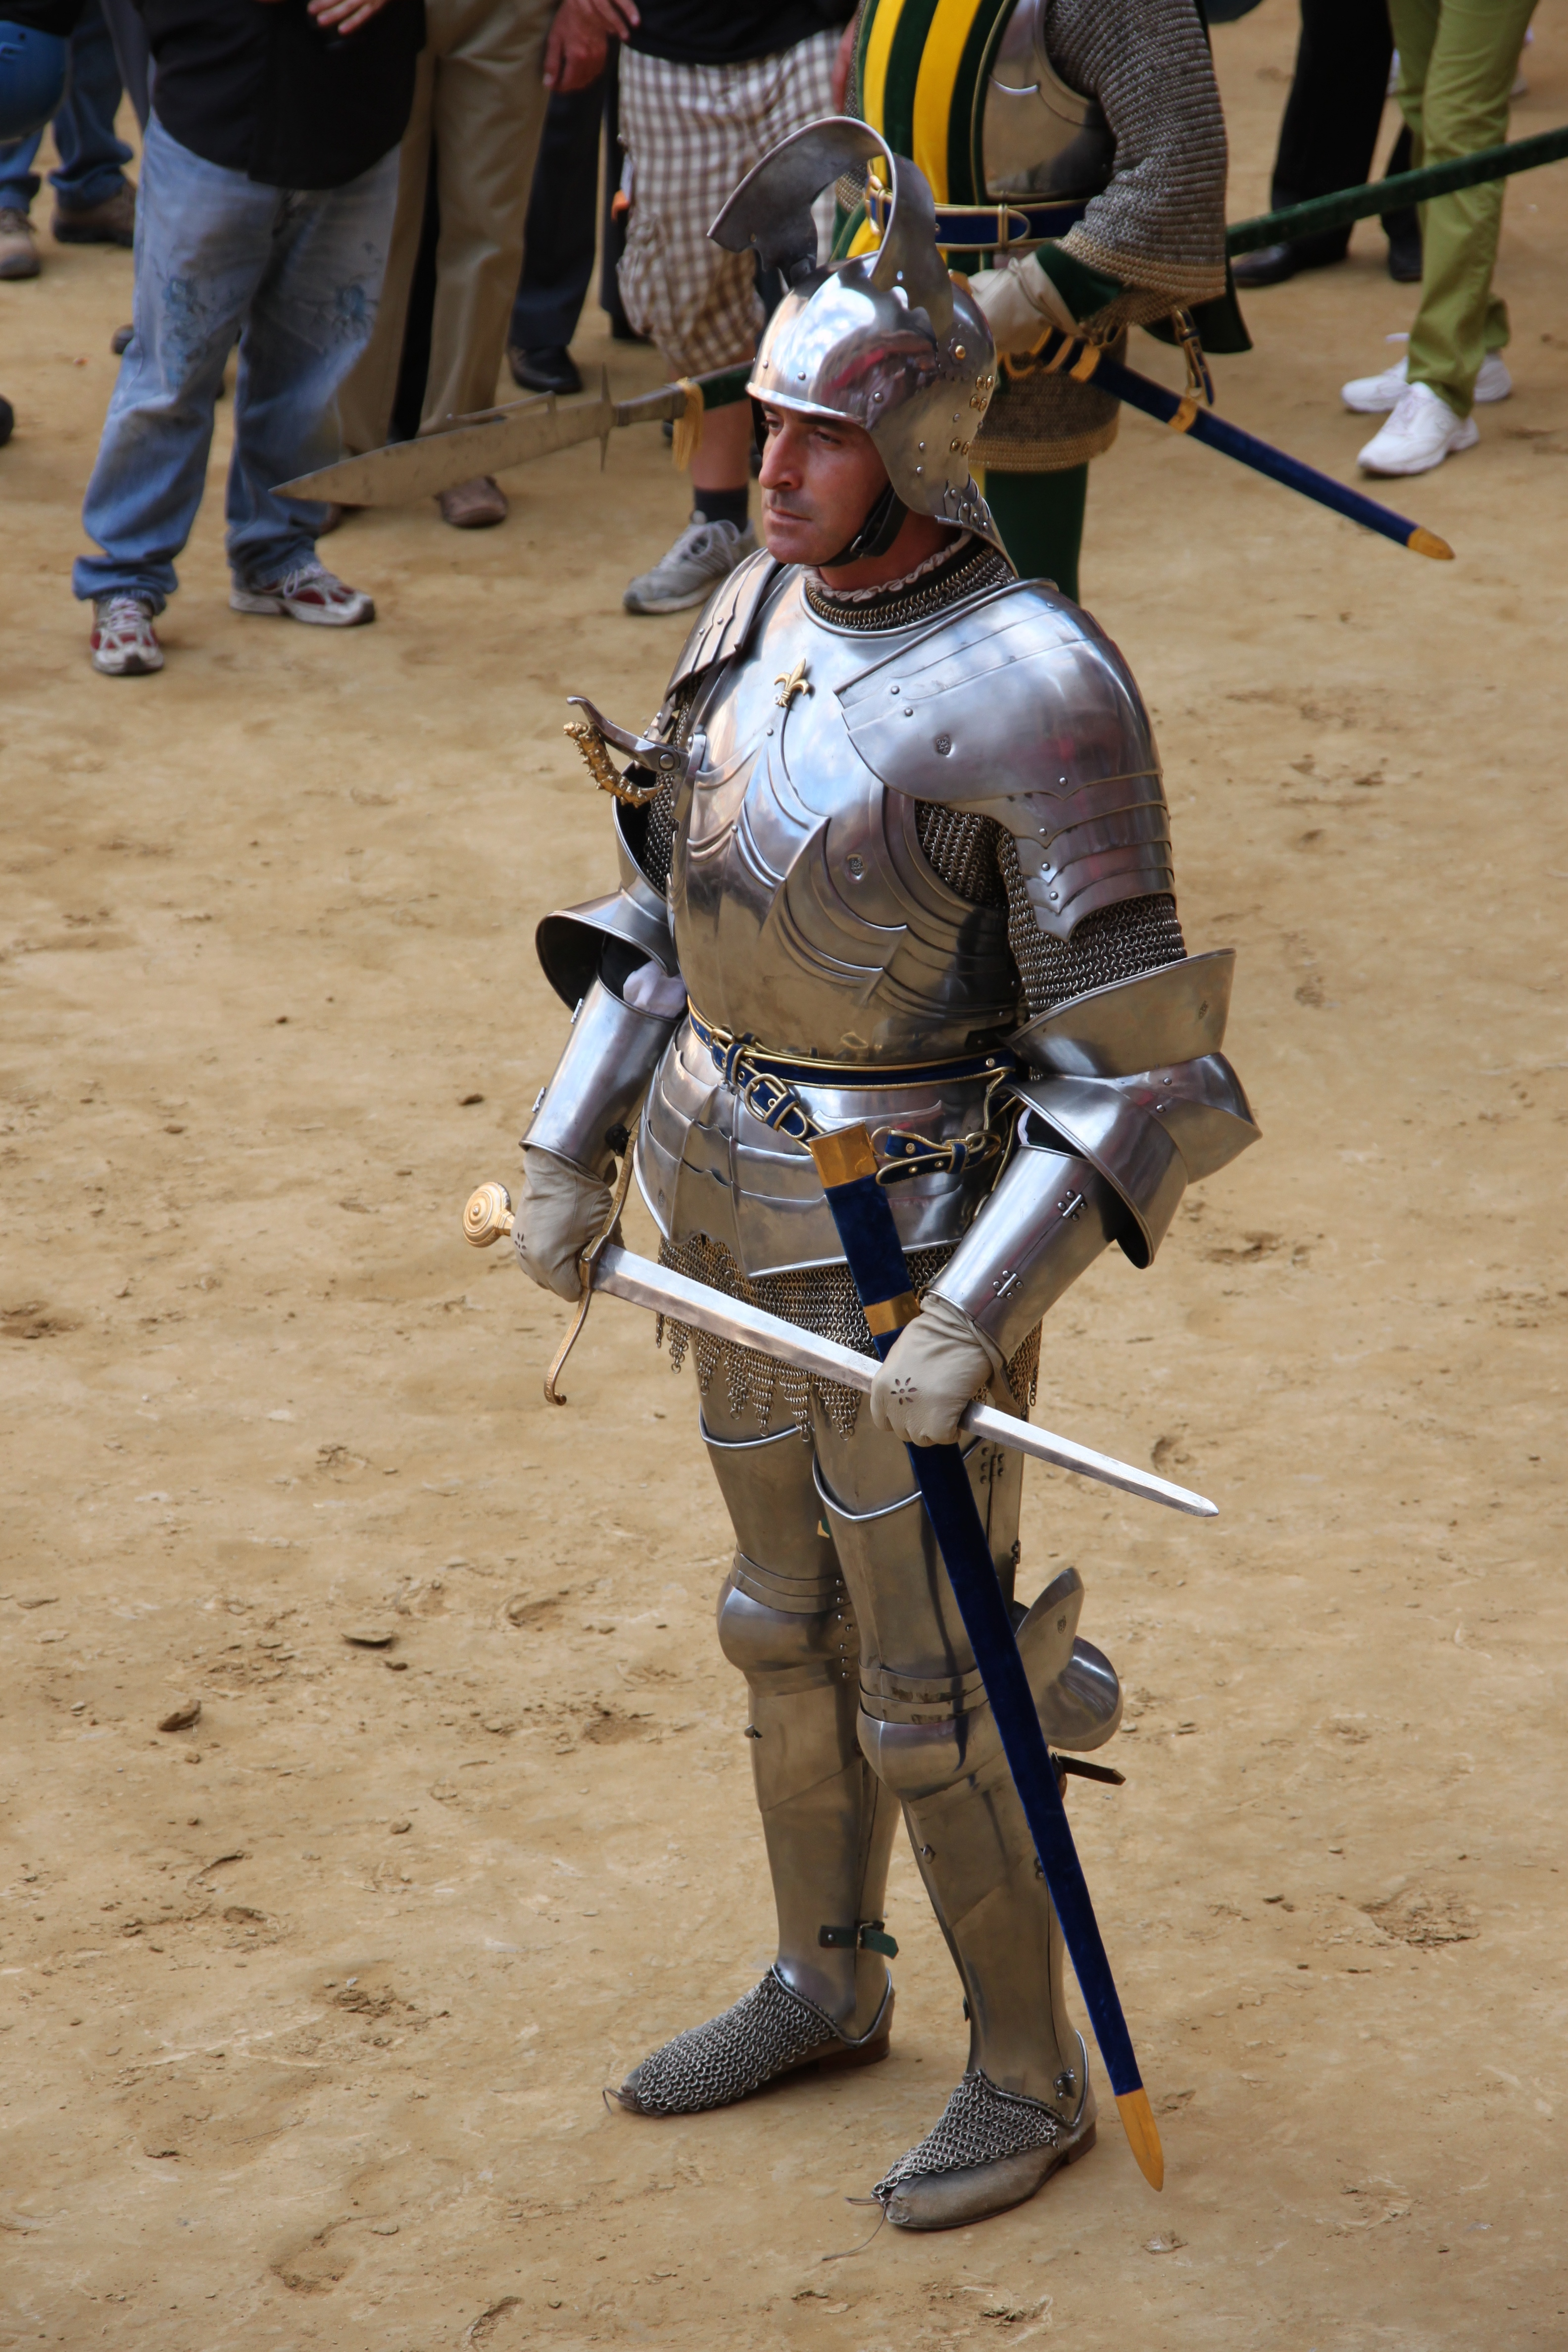 Photo of a Siena citizen dressed as a mercenary for hire in the historic parade before the Palio horse race